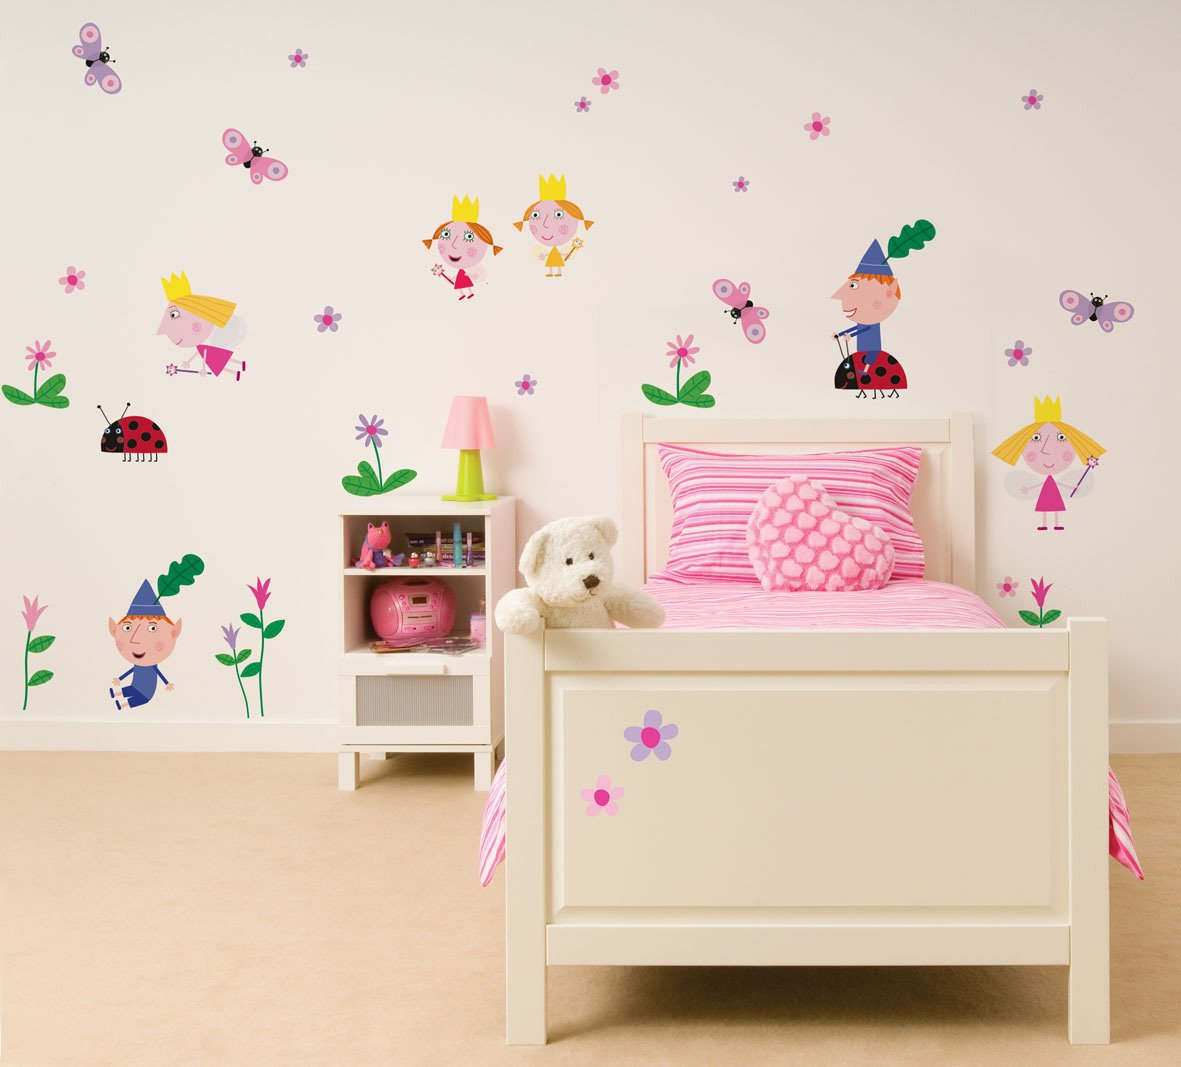 Fun4walls repositionable wall stickers ben and holly stickarounds fun4walls repositionable wall stickers ben and holly stickarounds amazon kitchen home amipublicfo Images